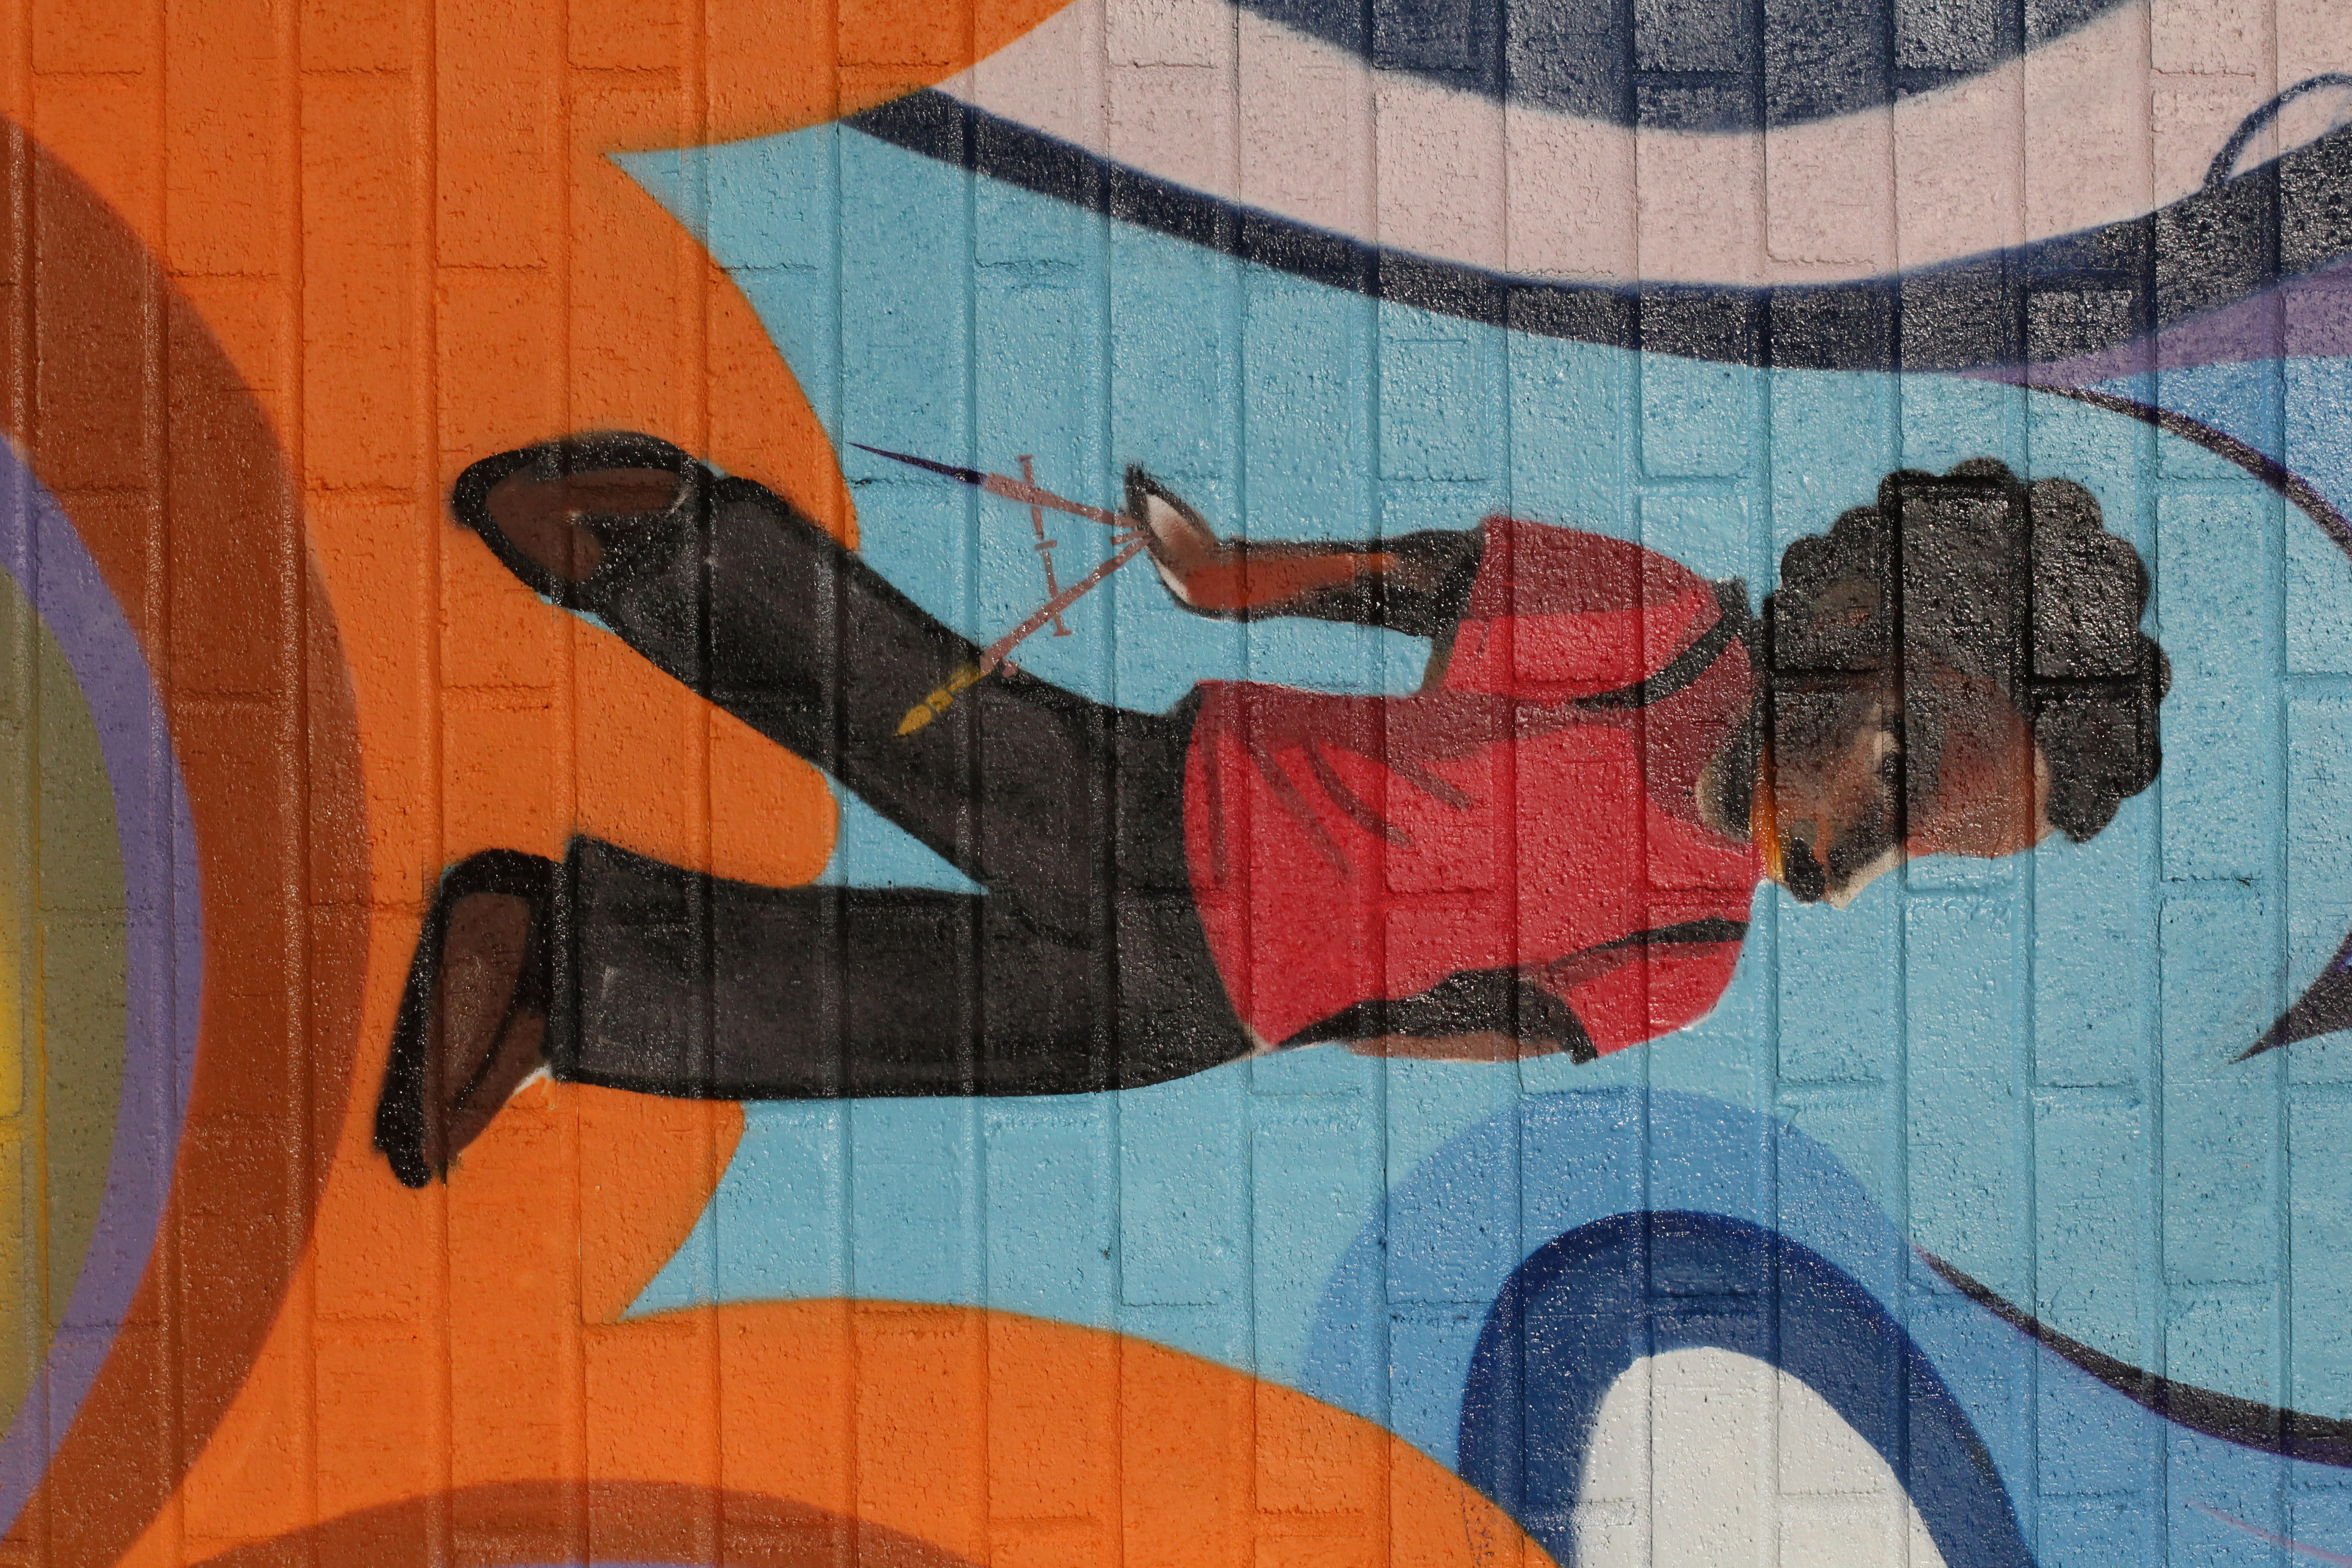 Malcolm x elementary school mural flickr photo sharing for Malcolm x mural